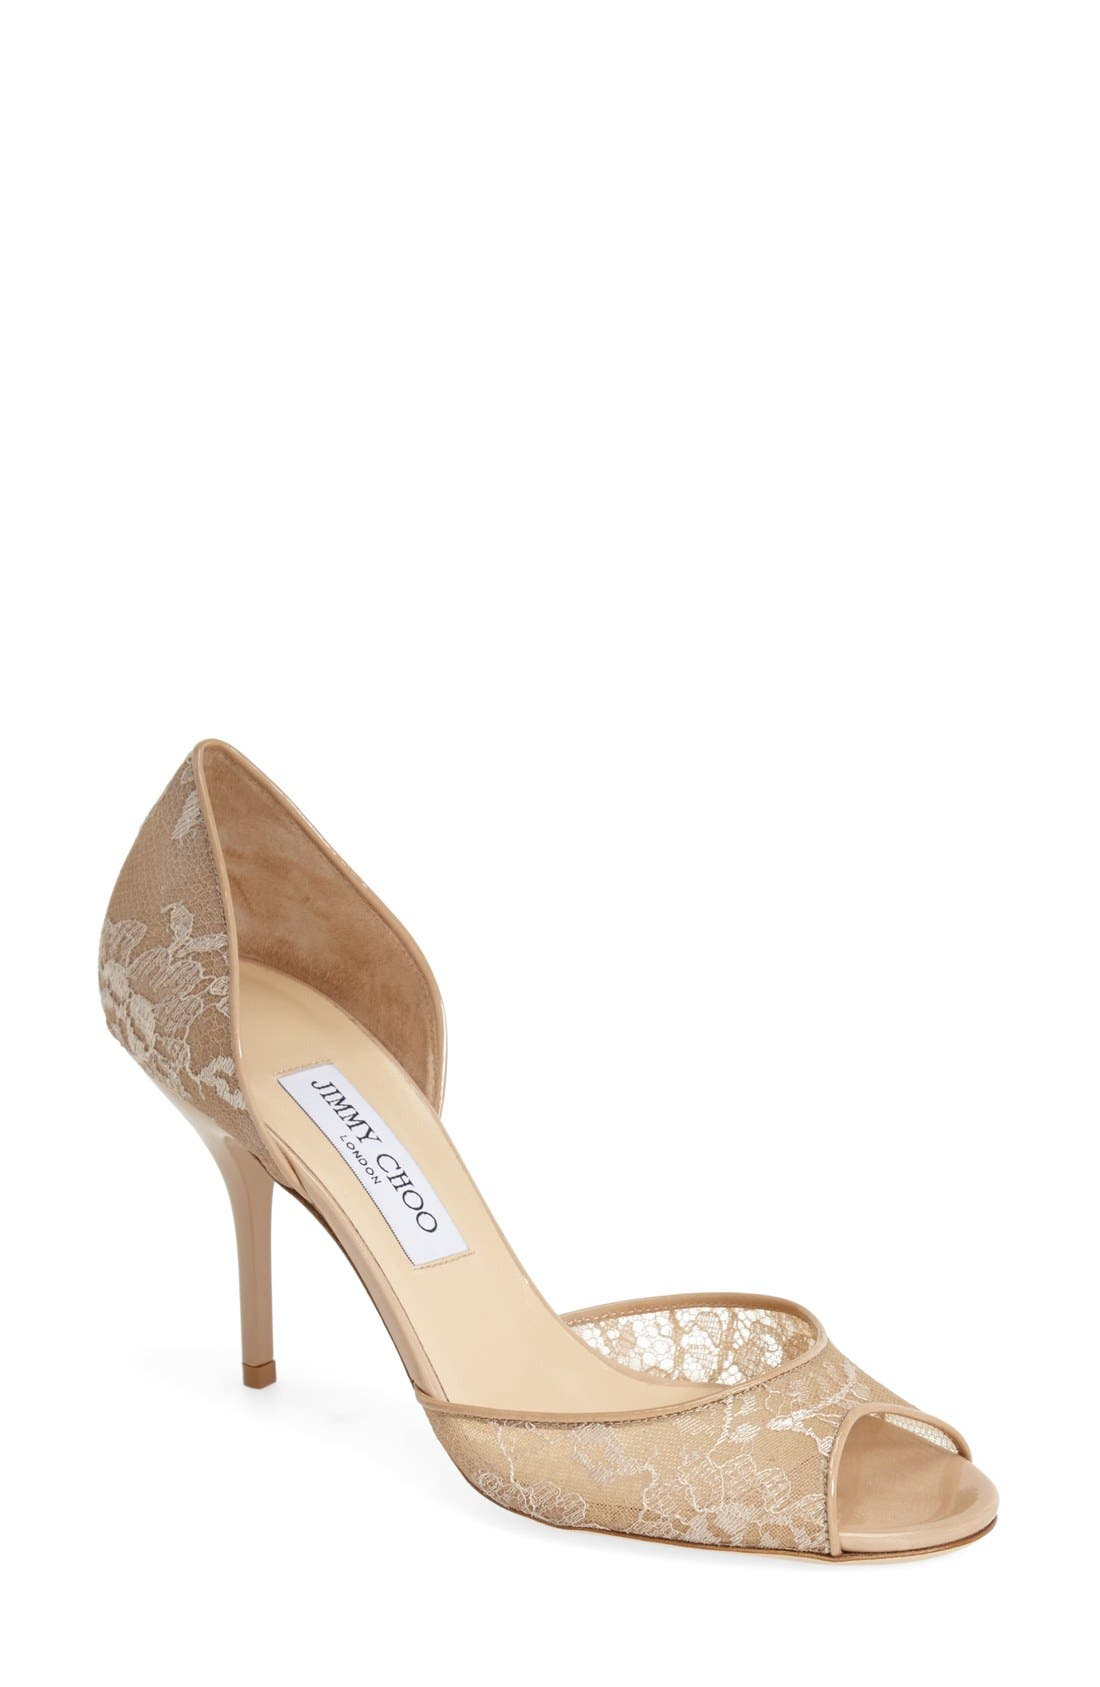 Main Image - Jimmy Choo 'Lien' Lace Open Toe d'Orsay Pump (Women)